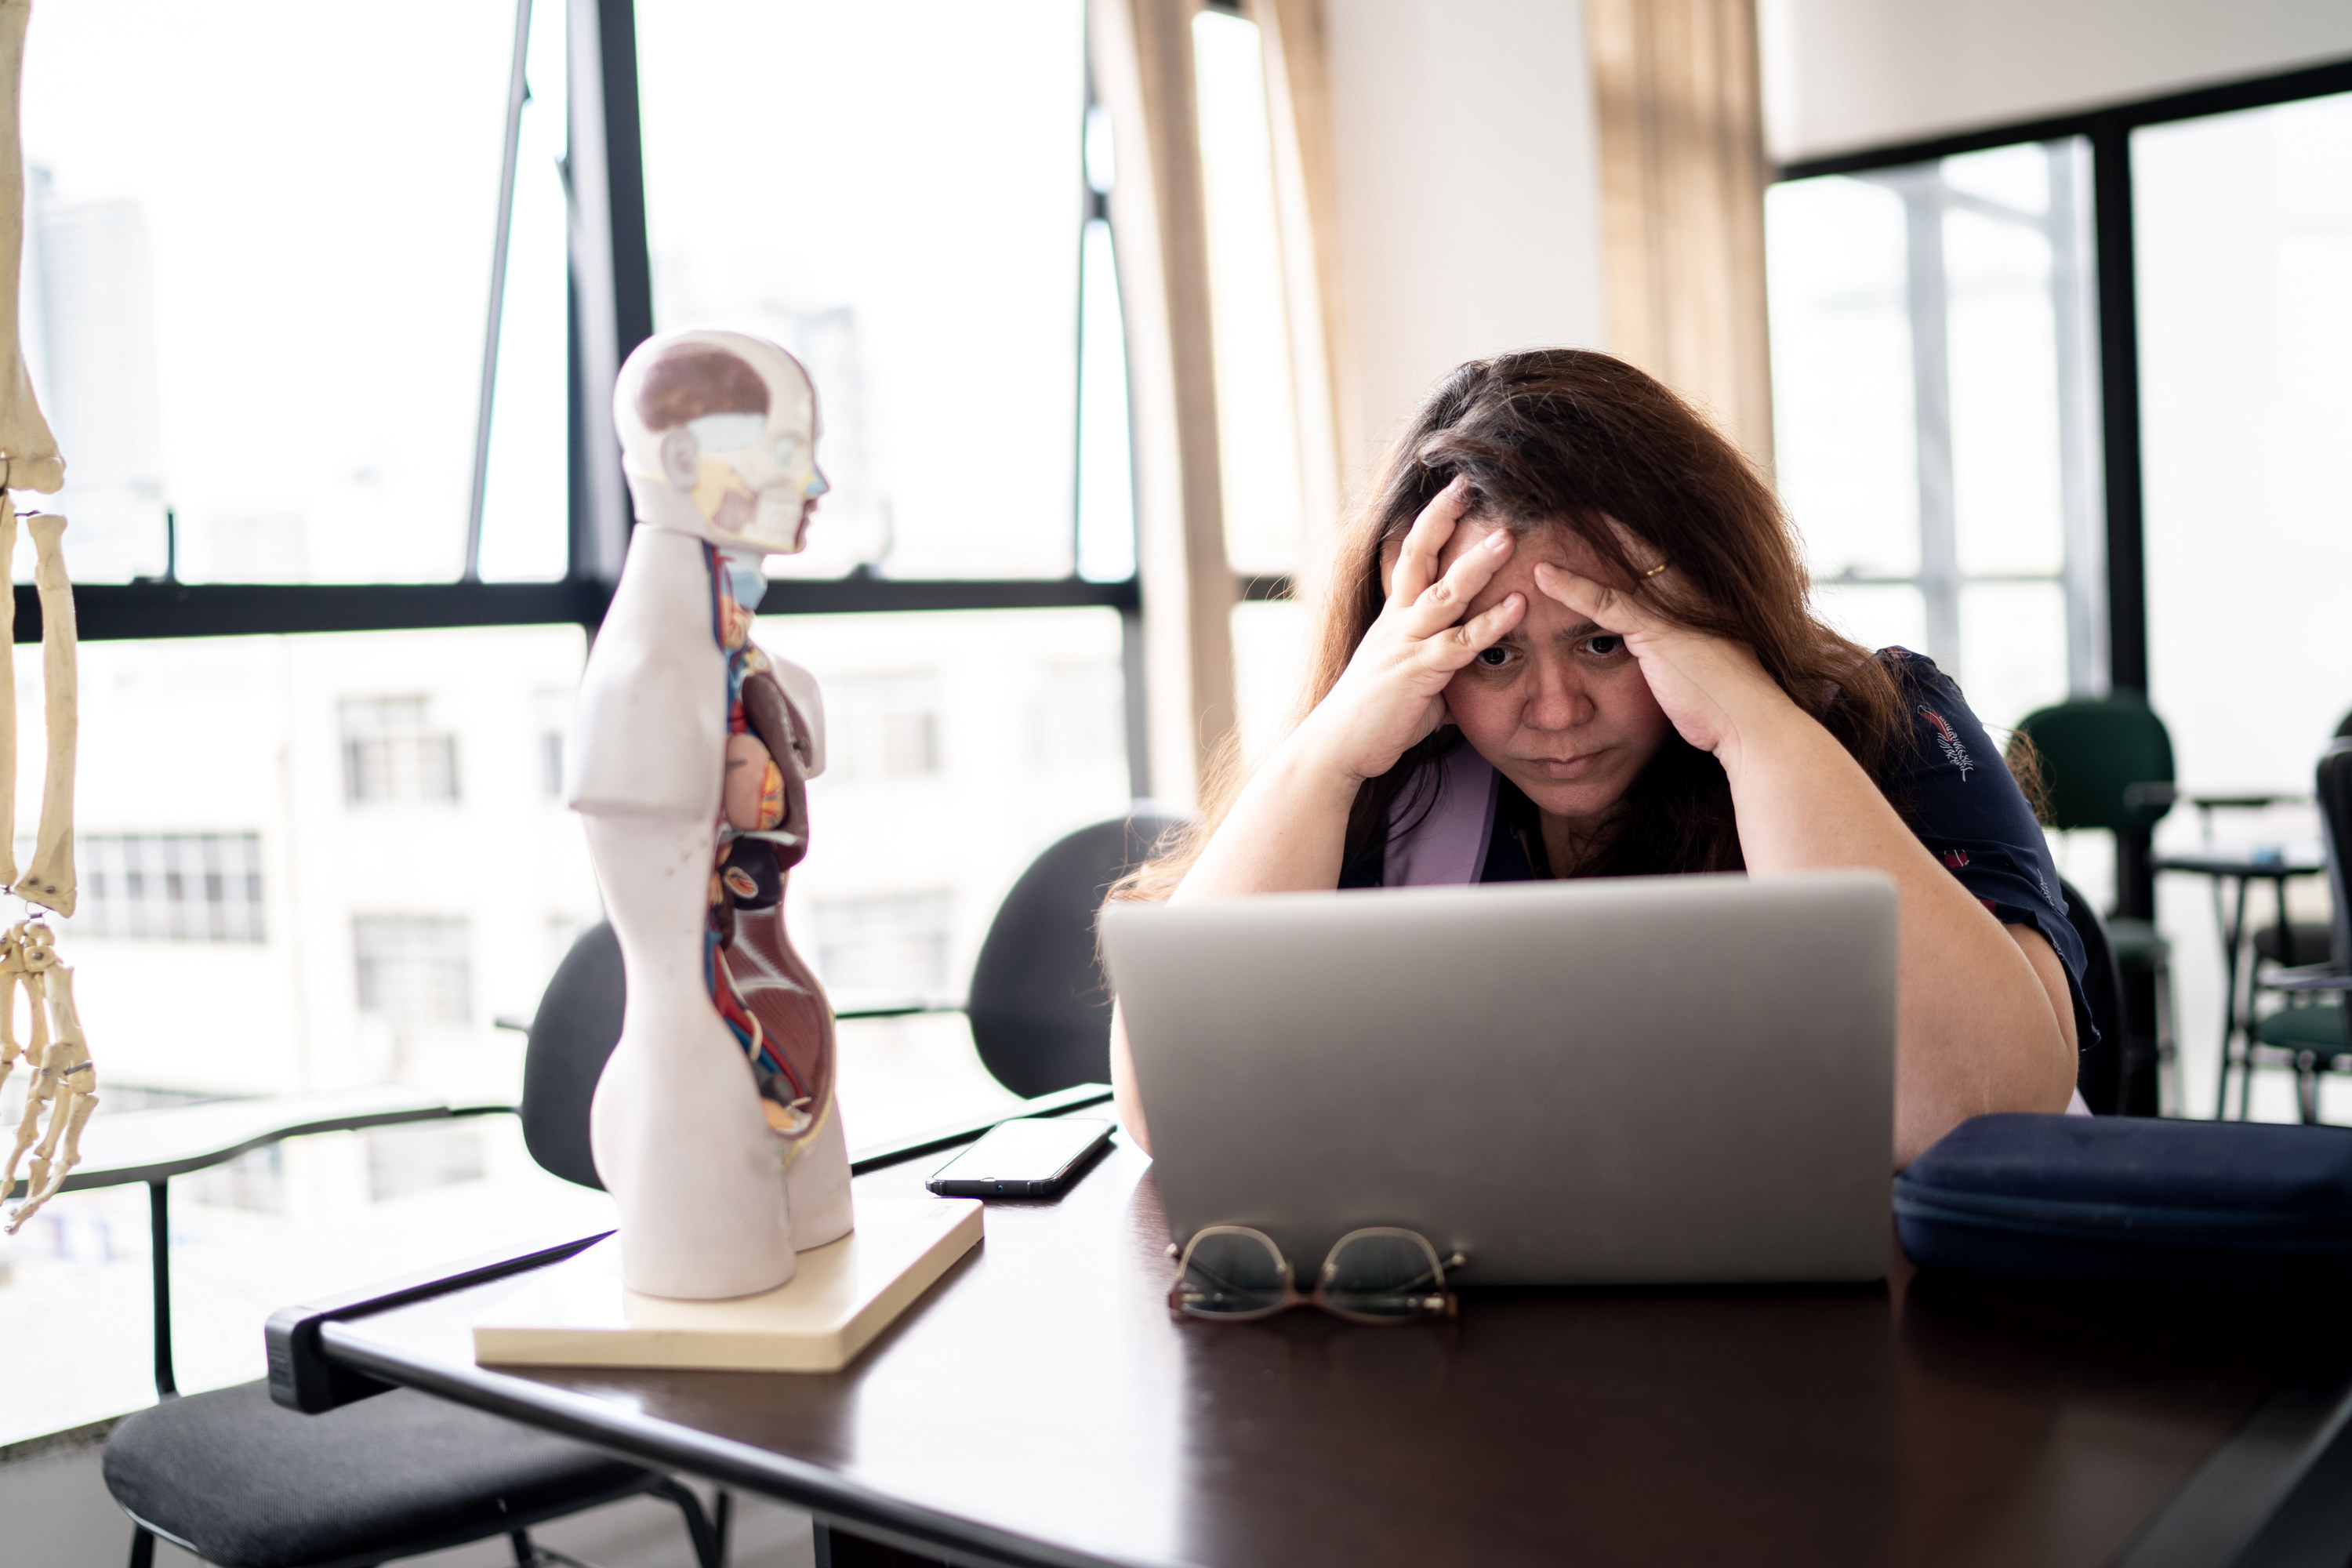 A stressed person holding their head in their hands as they look at their laptop